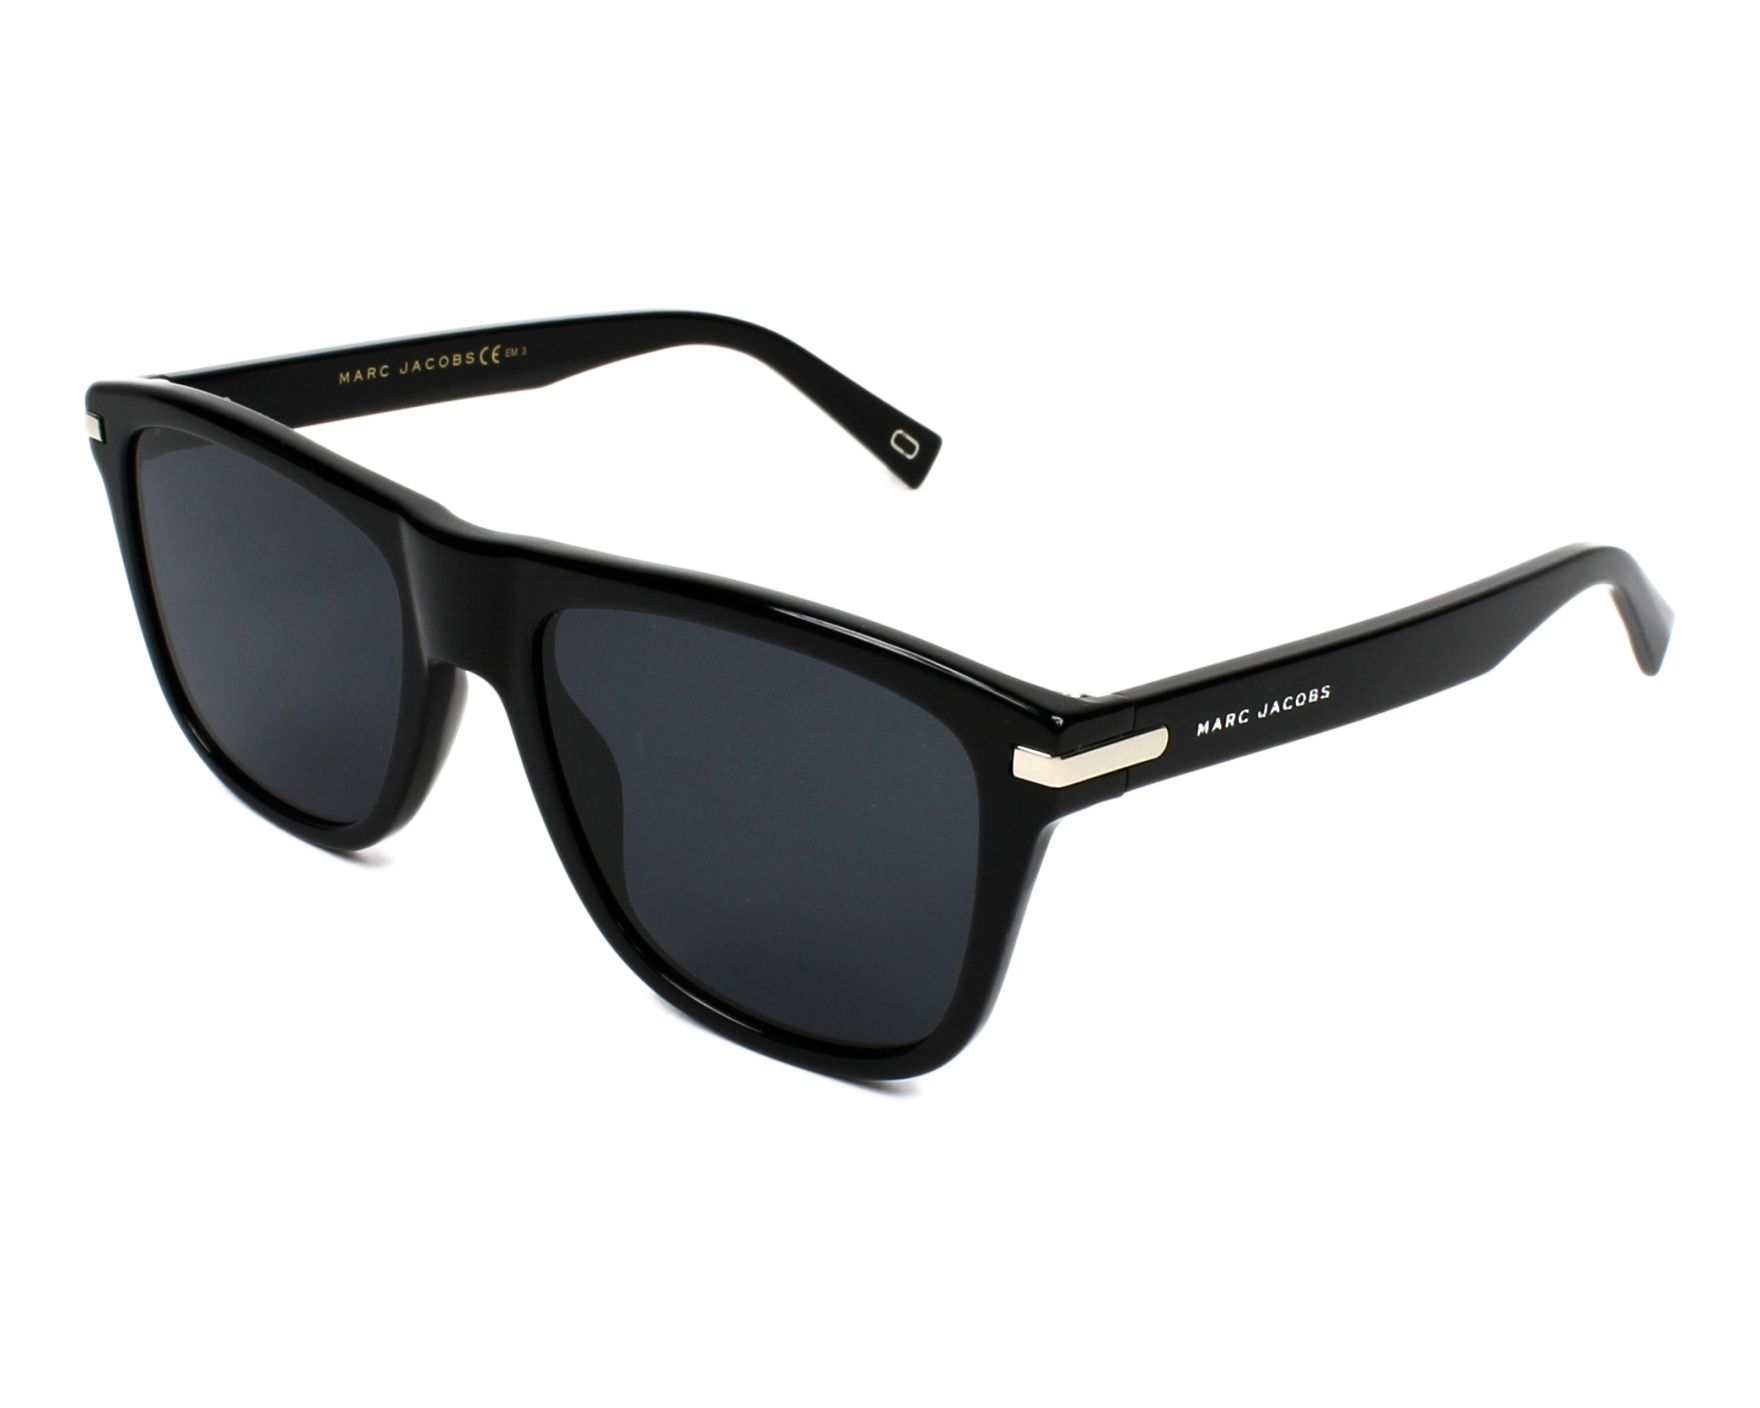 Marc Jacobs - Buy Marc Jacobs sunglasses online at low prices 07f68d12de86